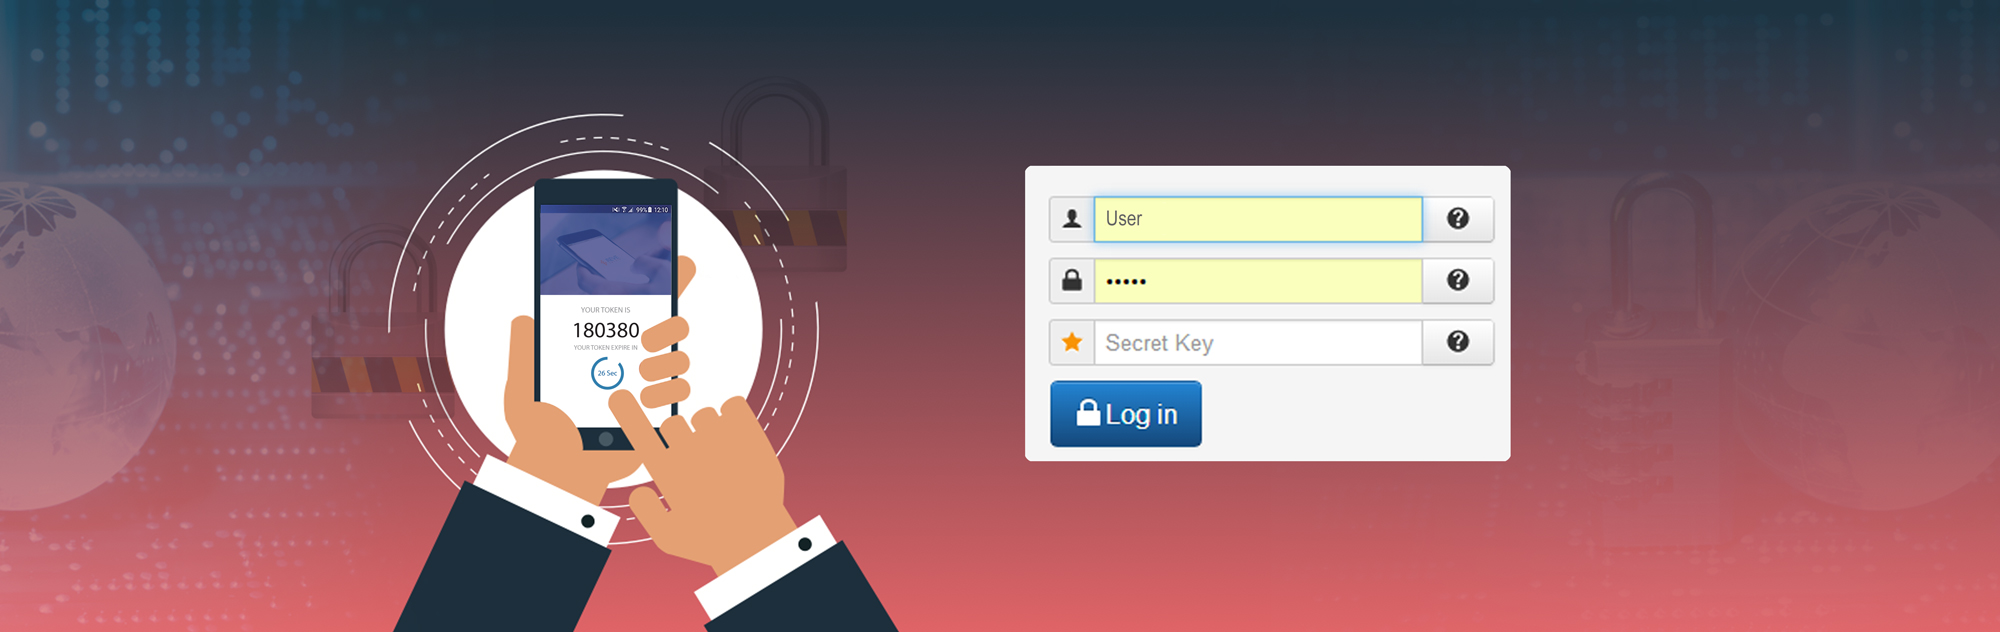 Two Factor Authentication – Two Layers That Strengthen Online Account Security